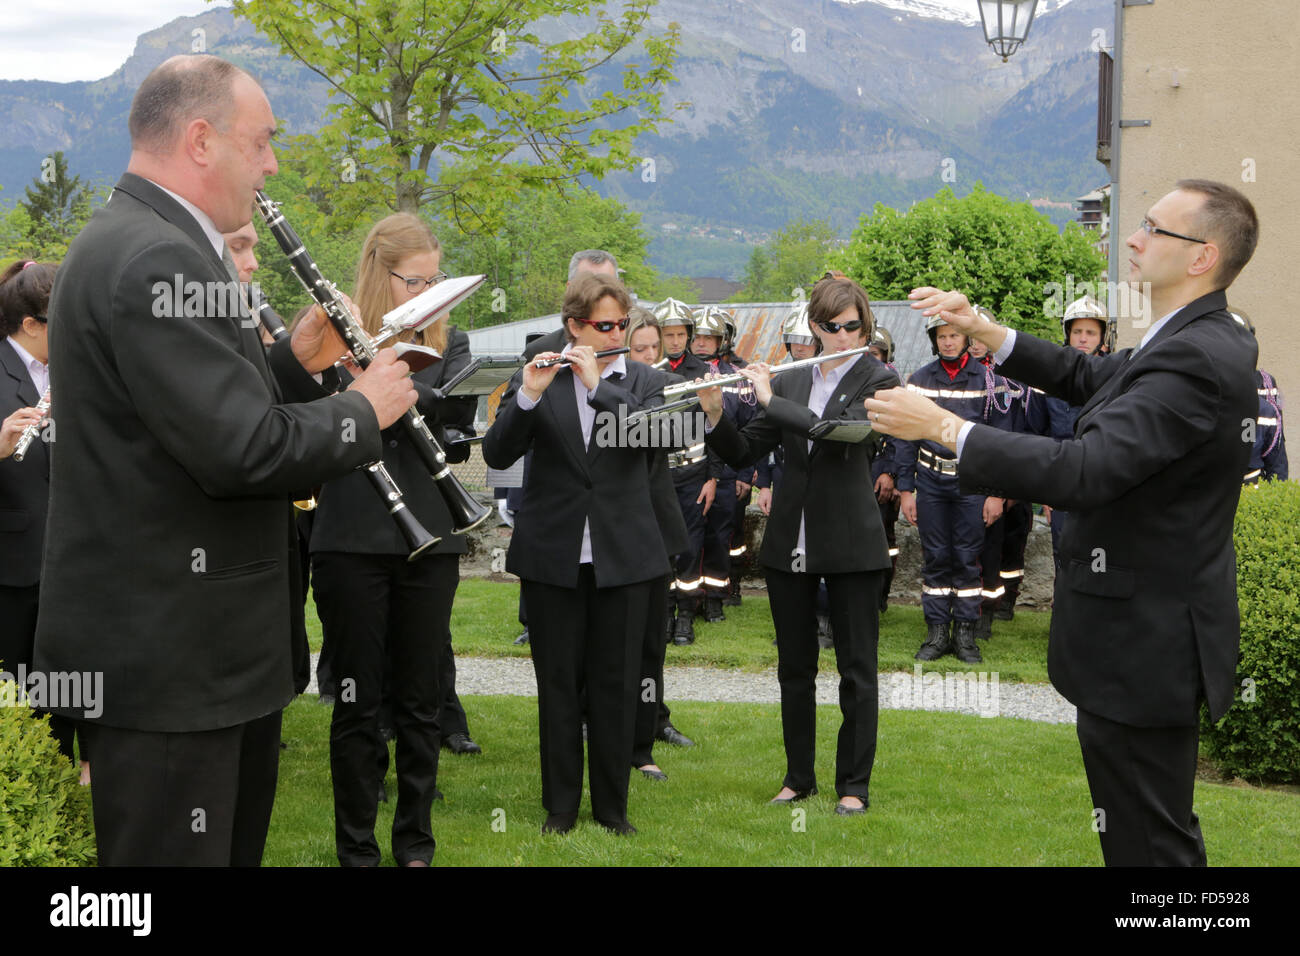 Harmony of St Gervais. Marching band. - Stock Image